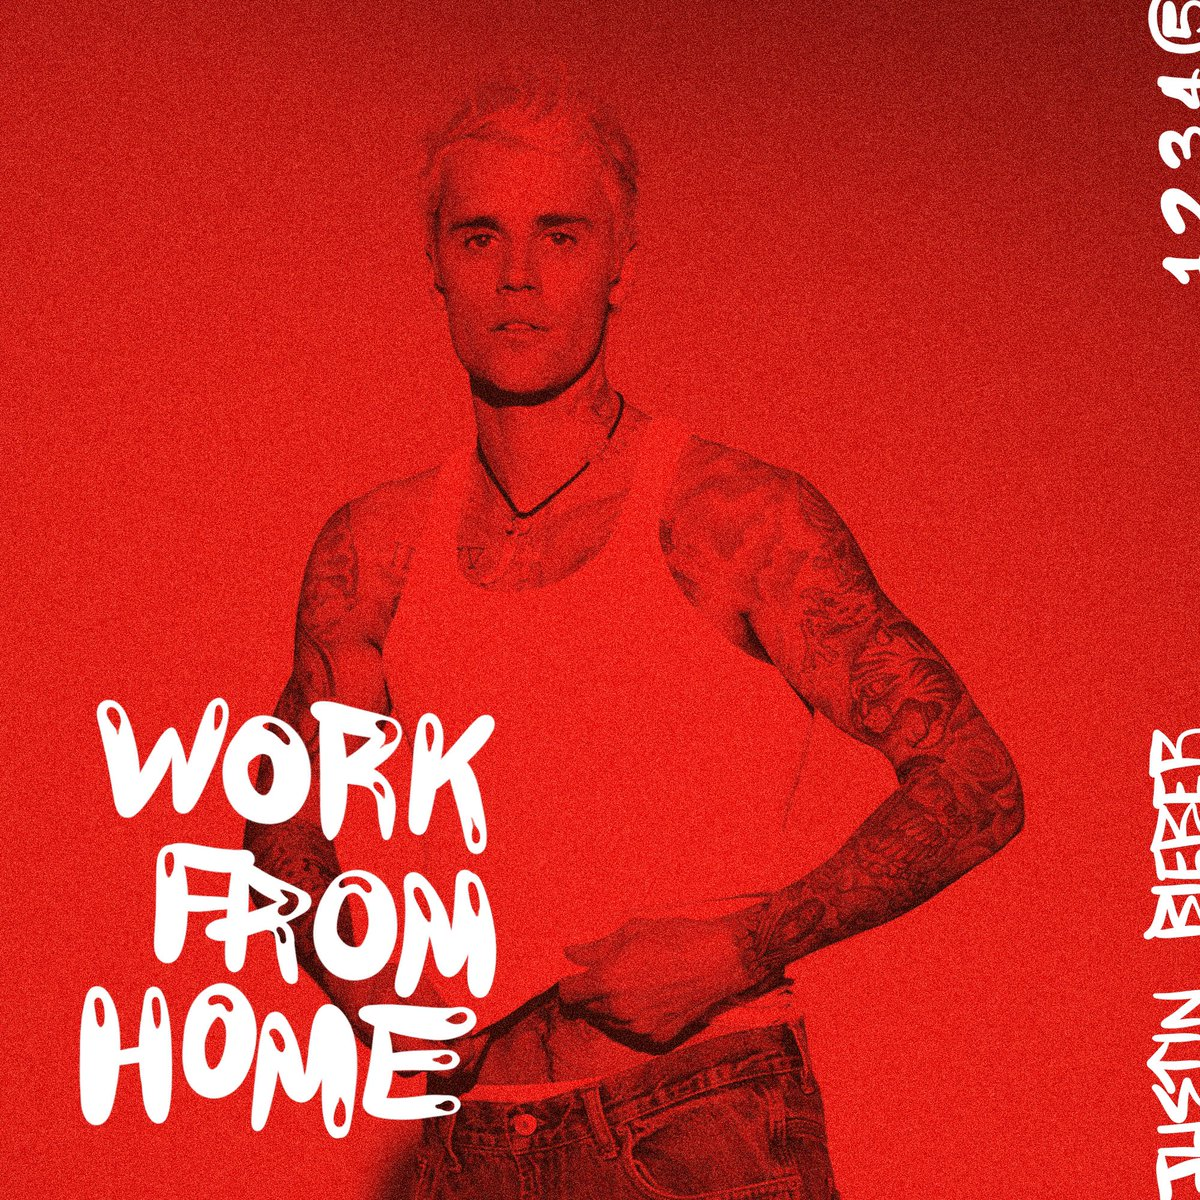 https://justinbieber.lnk.to/WorkFromHome